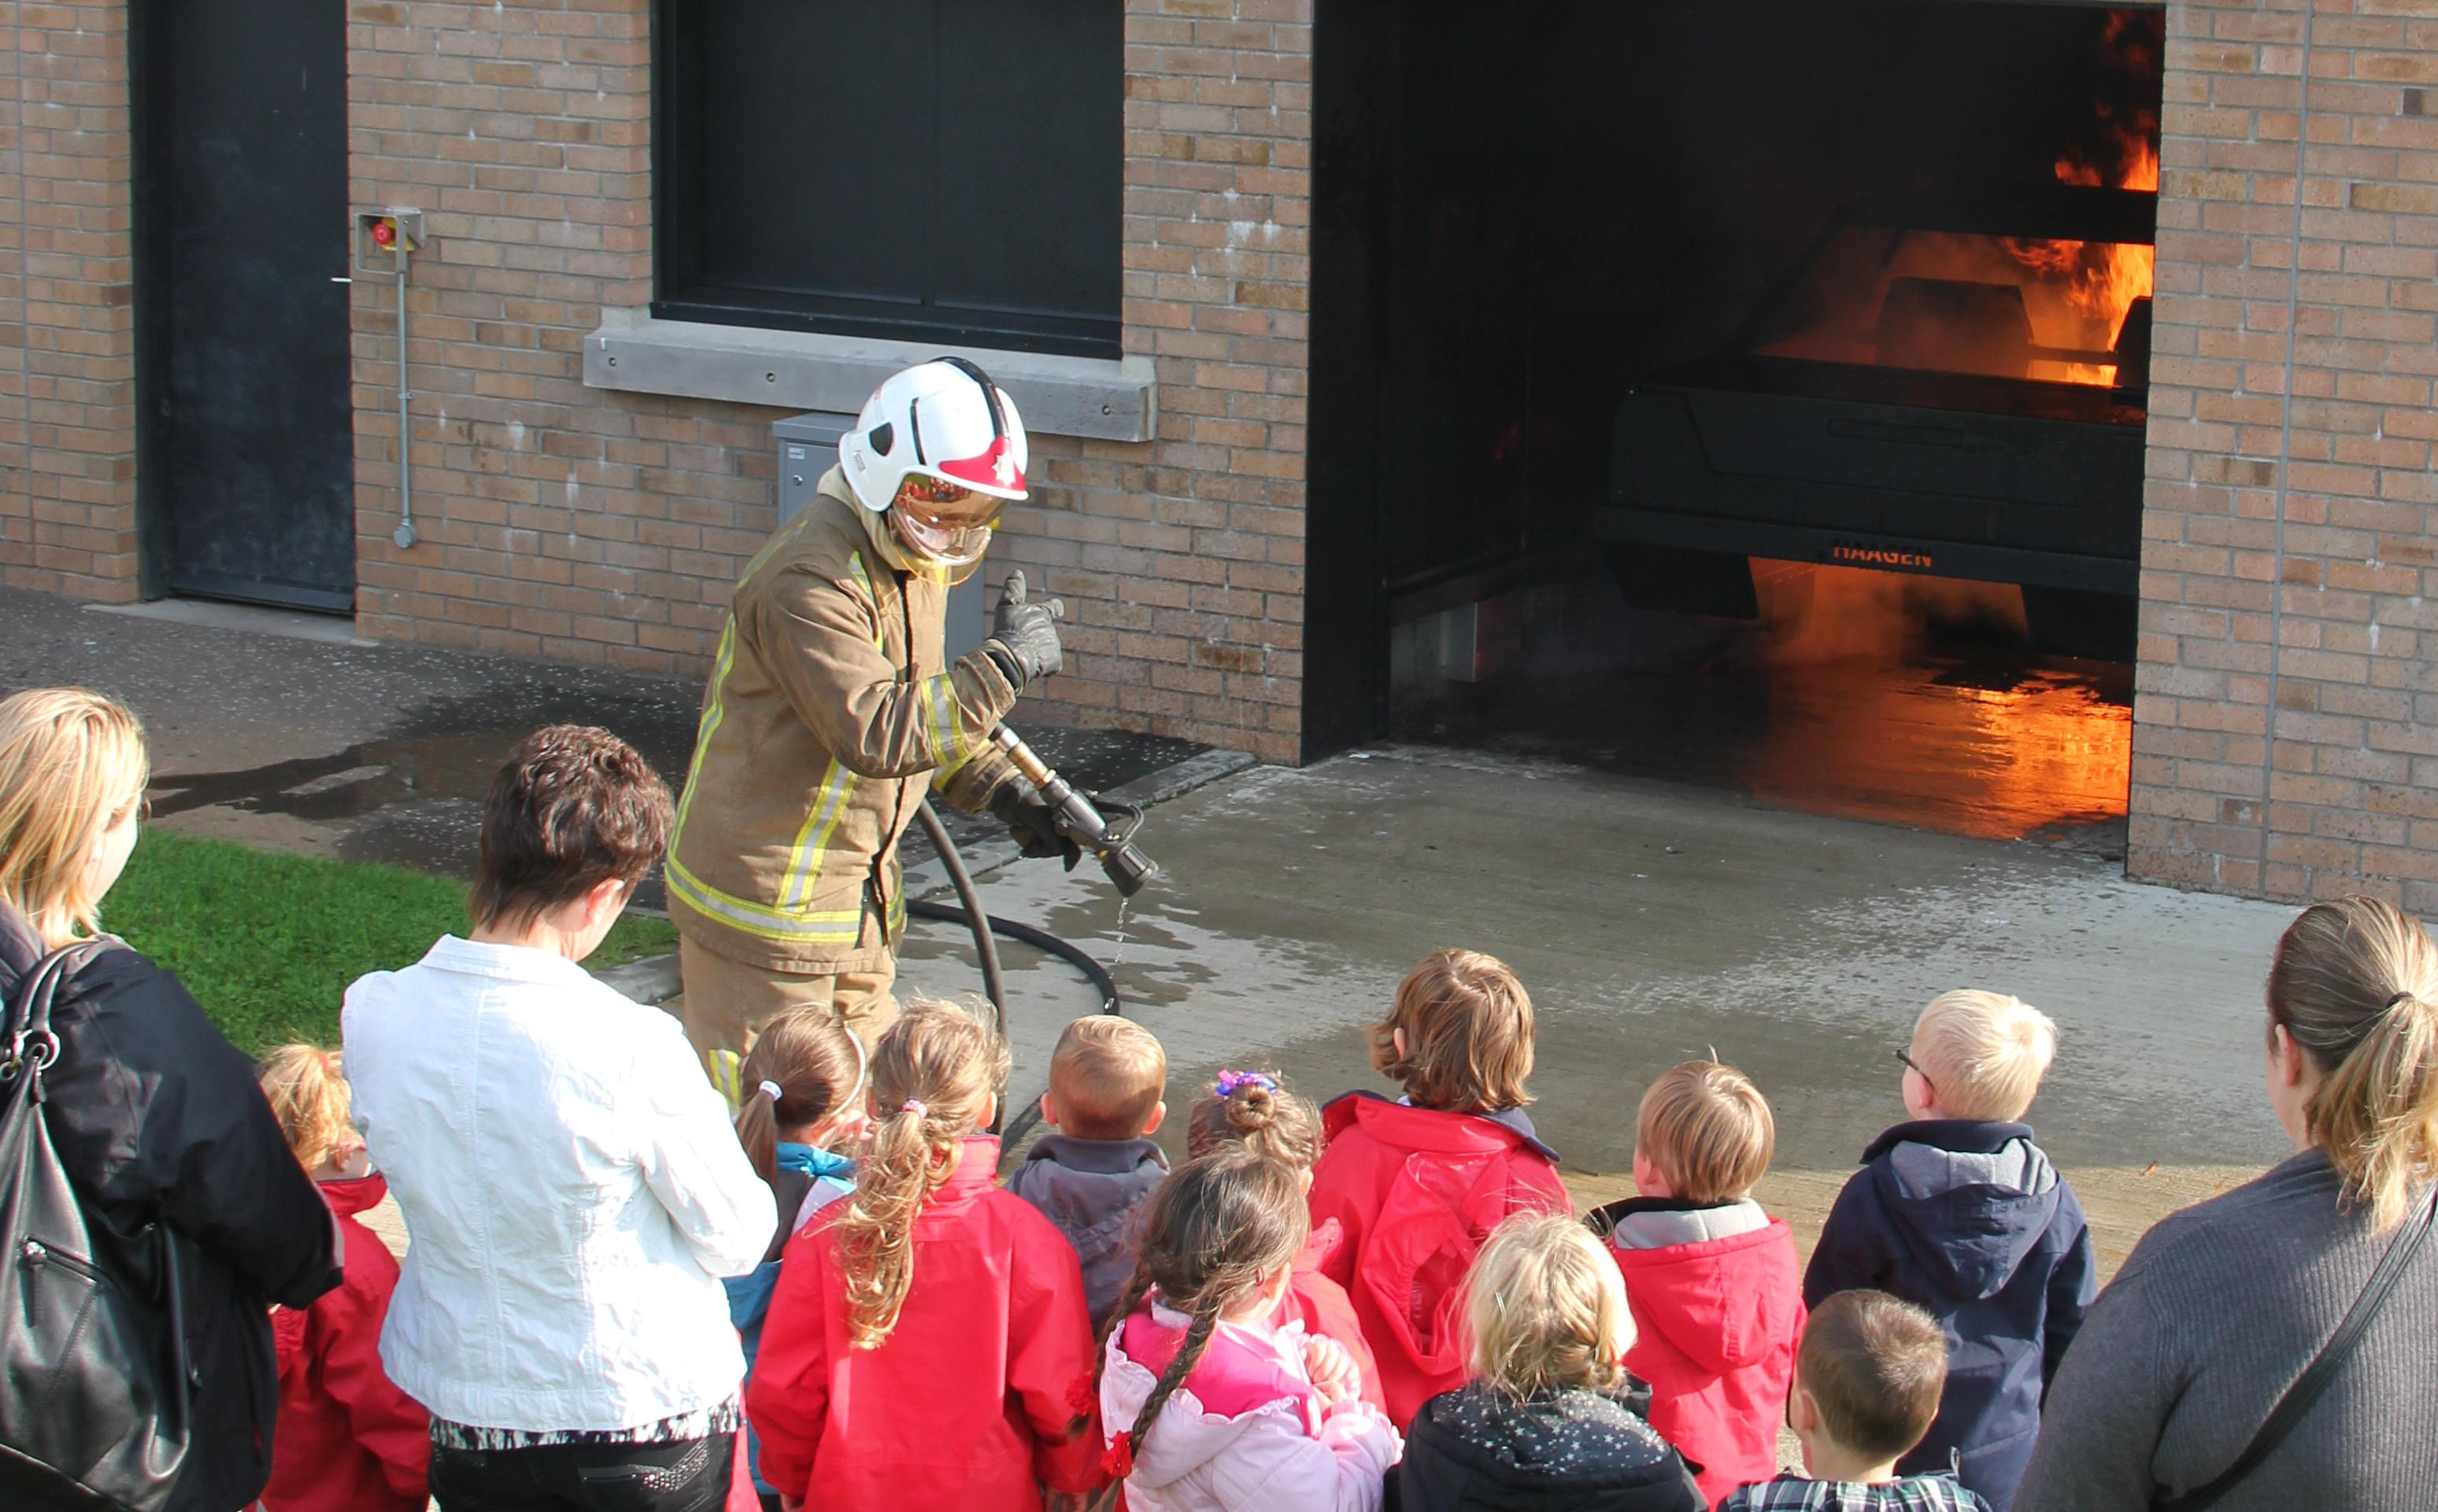 Motherwell kids know fire safety rules!